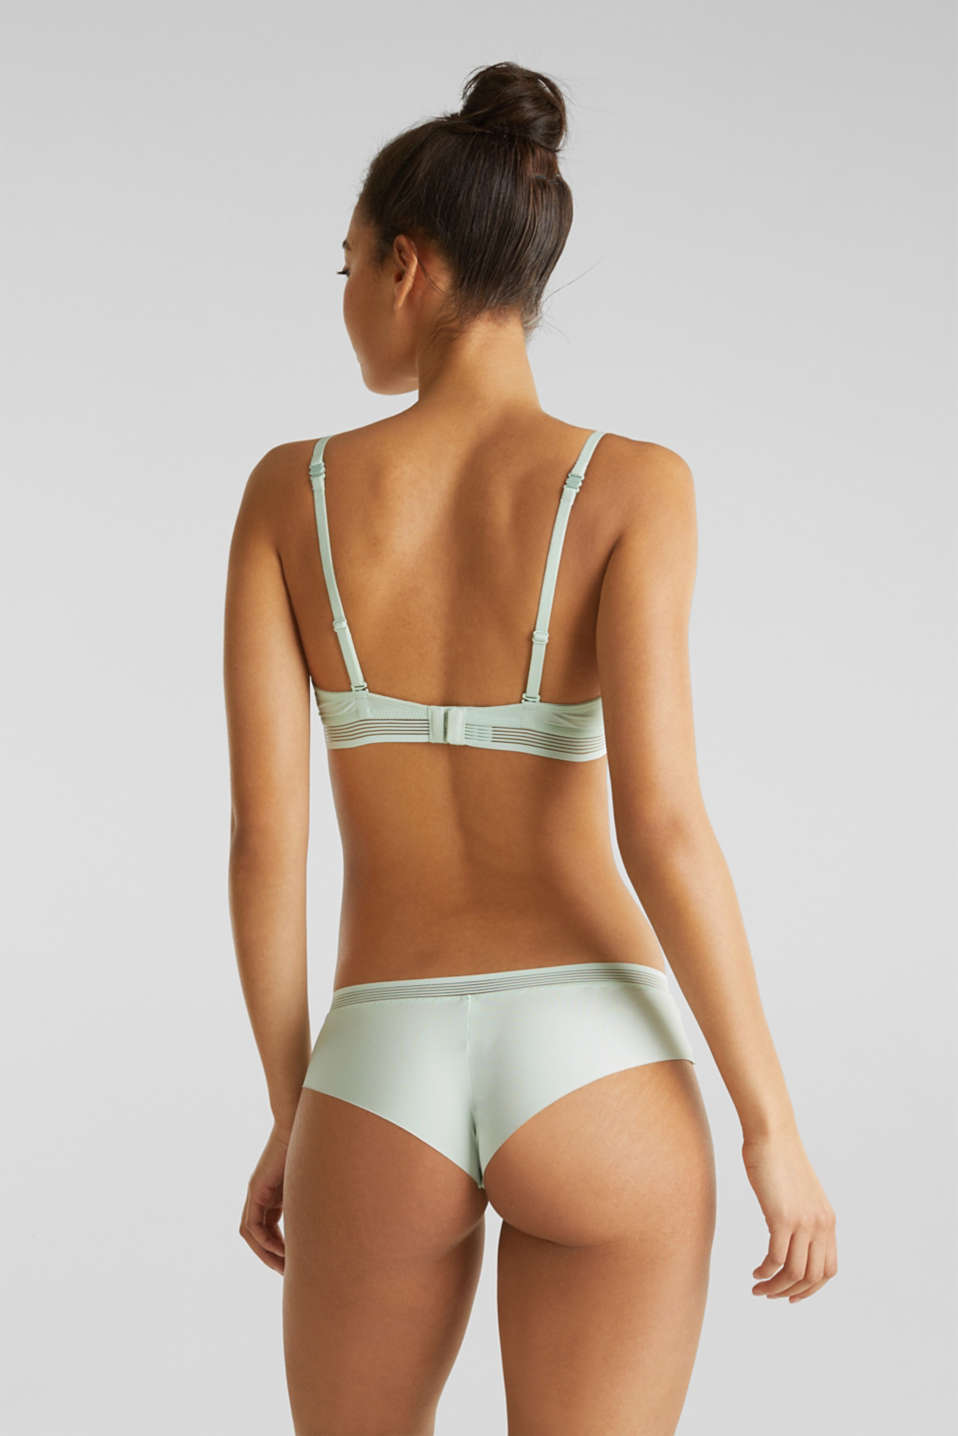 Hipster shorts with sheer stripes, LIGHT AQUA GREEN, detail image number 2